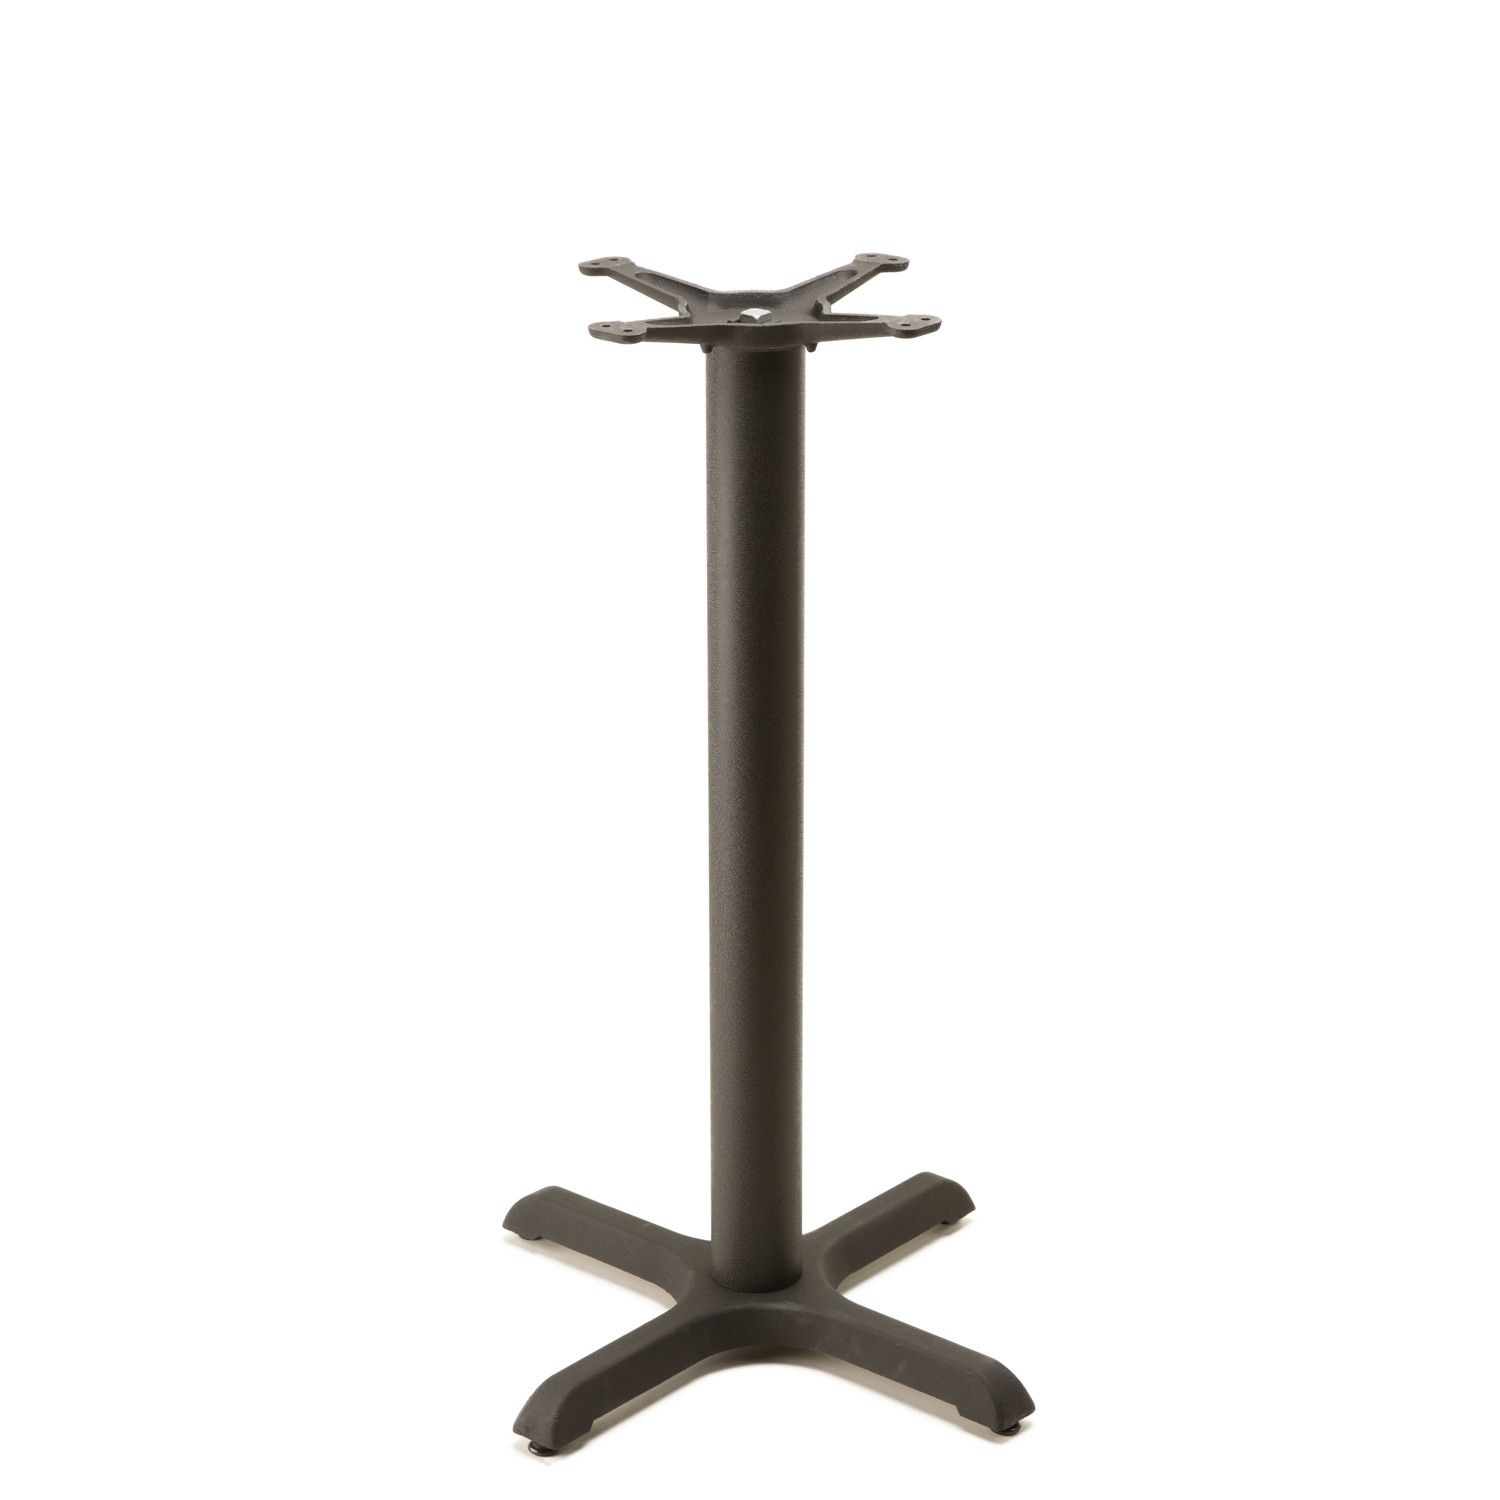 Charmant 22x22 Counter Height Cast Iron Table Base